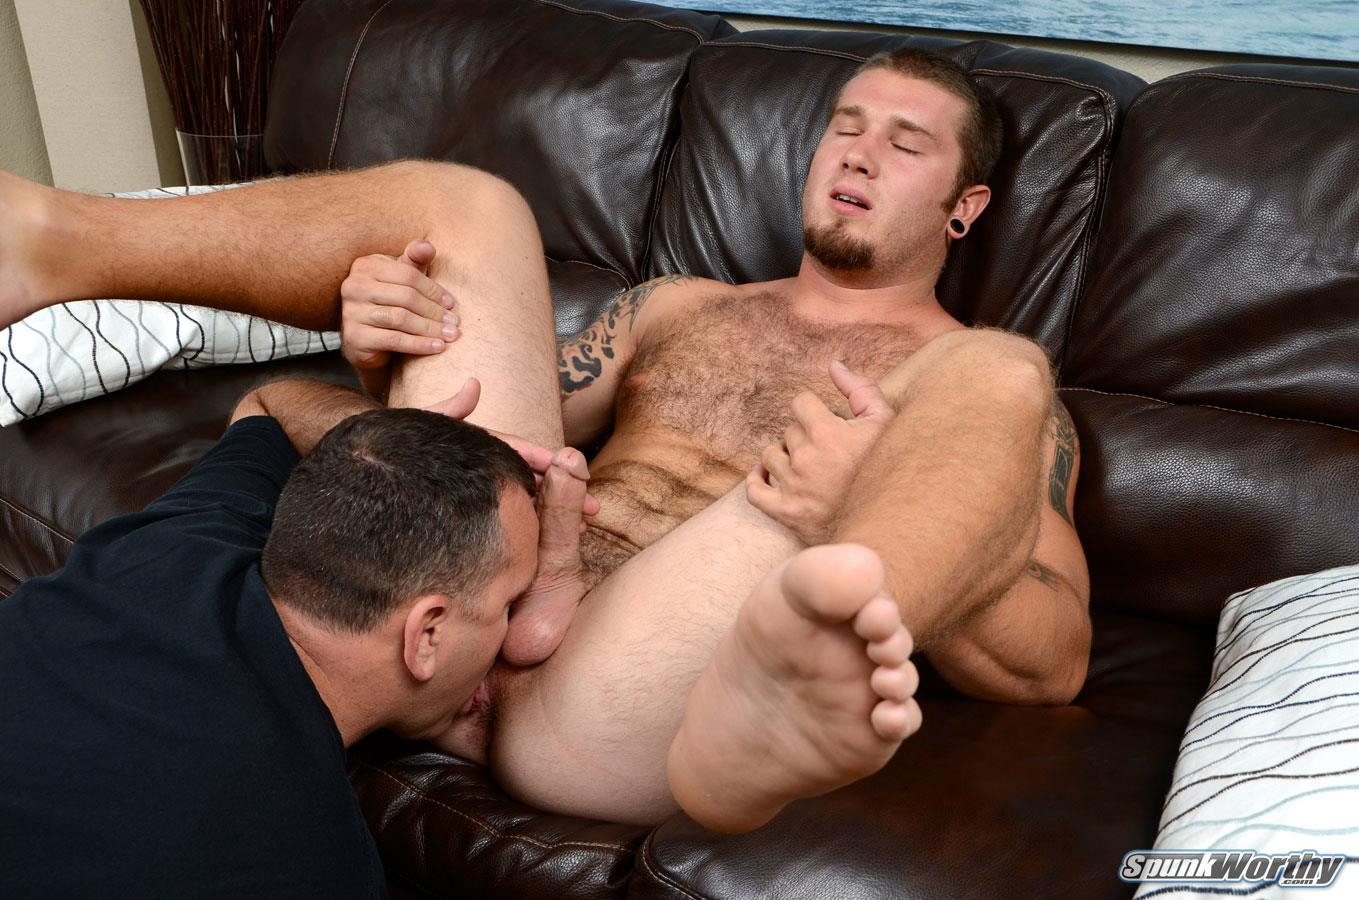 SpunkWorthy Preston Straight Guy Getting His First Blowjob Hairy Cub Amateur Gay Porn 06 Straight Hairy Young Muscle Cub Gets His First Blowjob From Another Guy